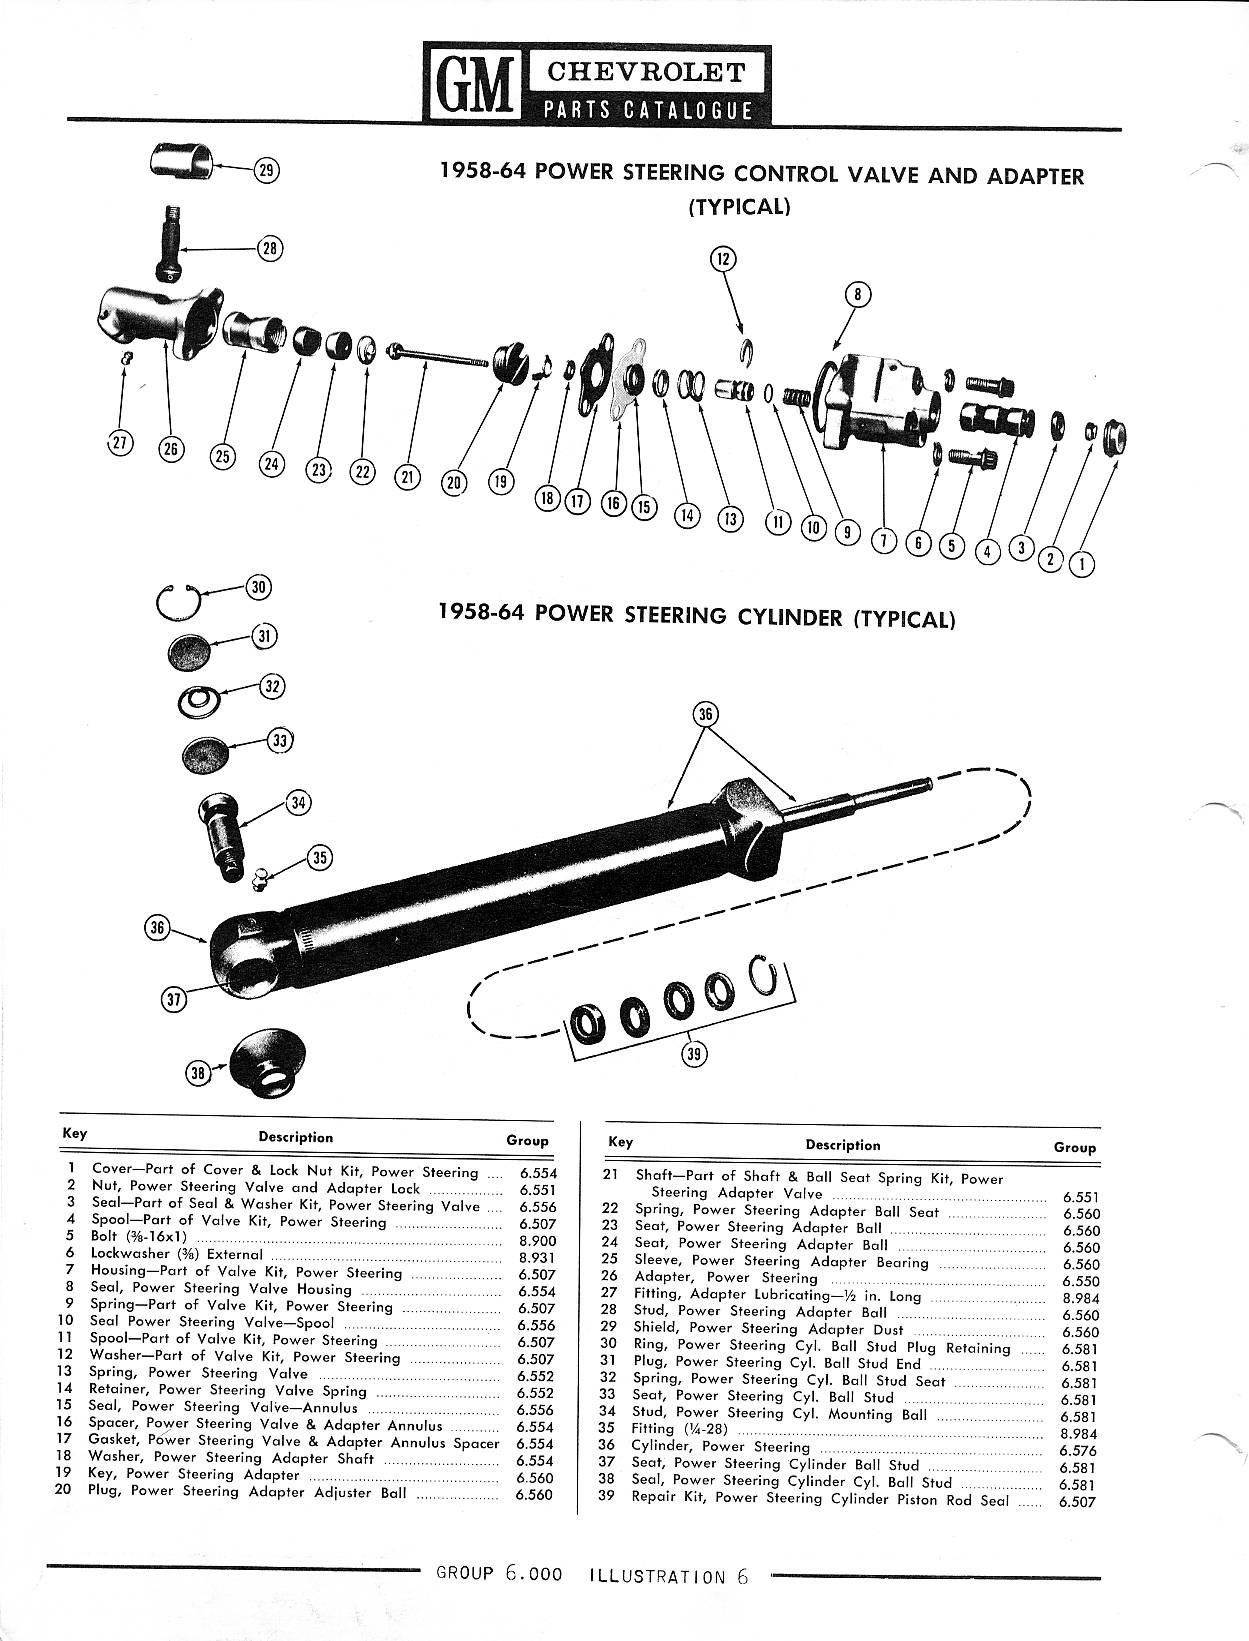 1964 Impala Steering Diagram : 28 Wiring Diagram Images